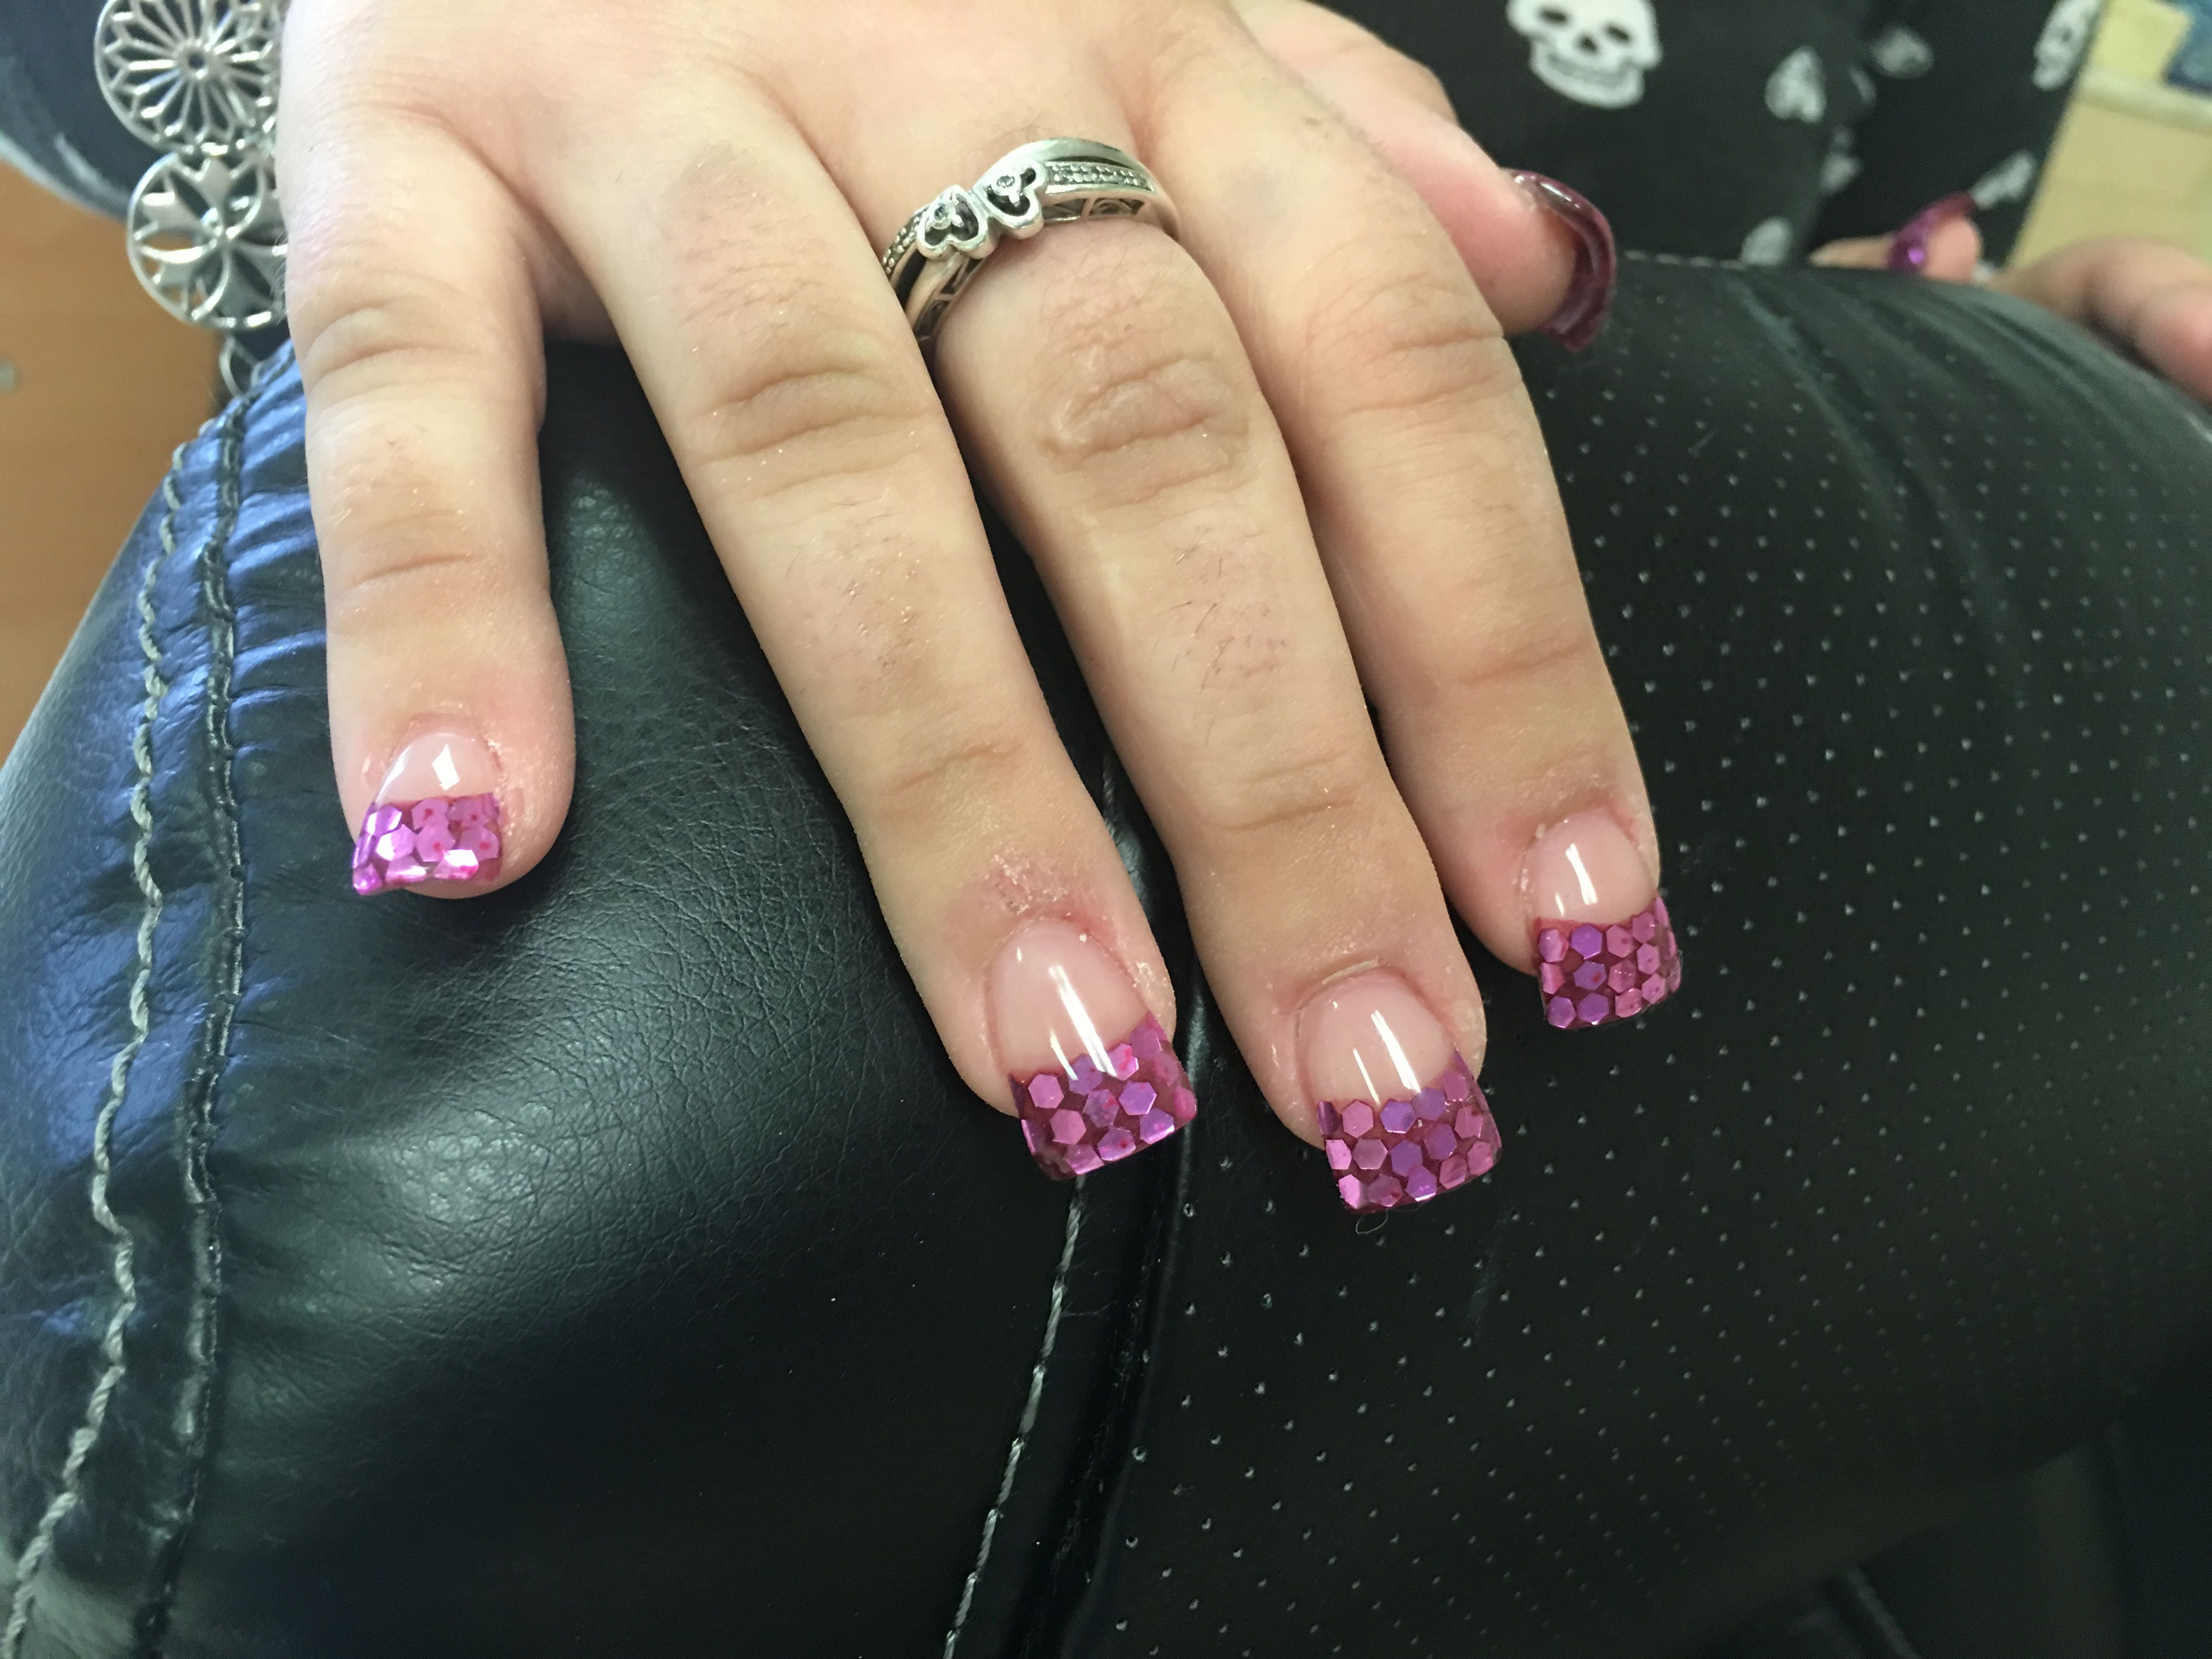 Pin by New Star Nails Wharton on Sophie @ star nails | Pinterest